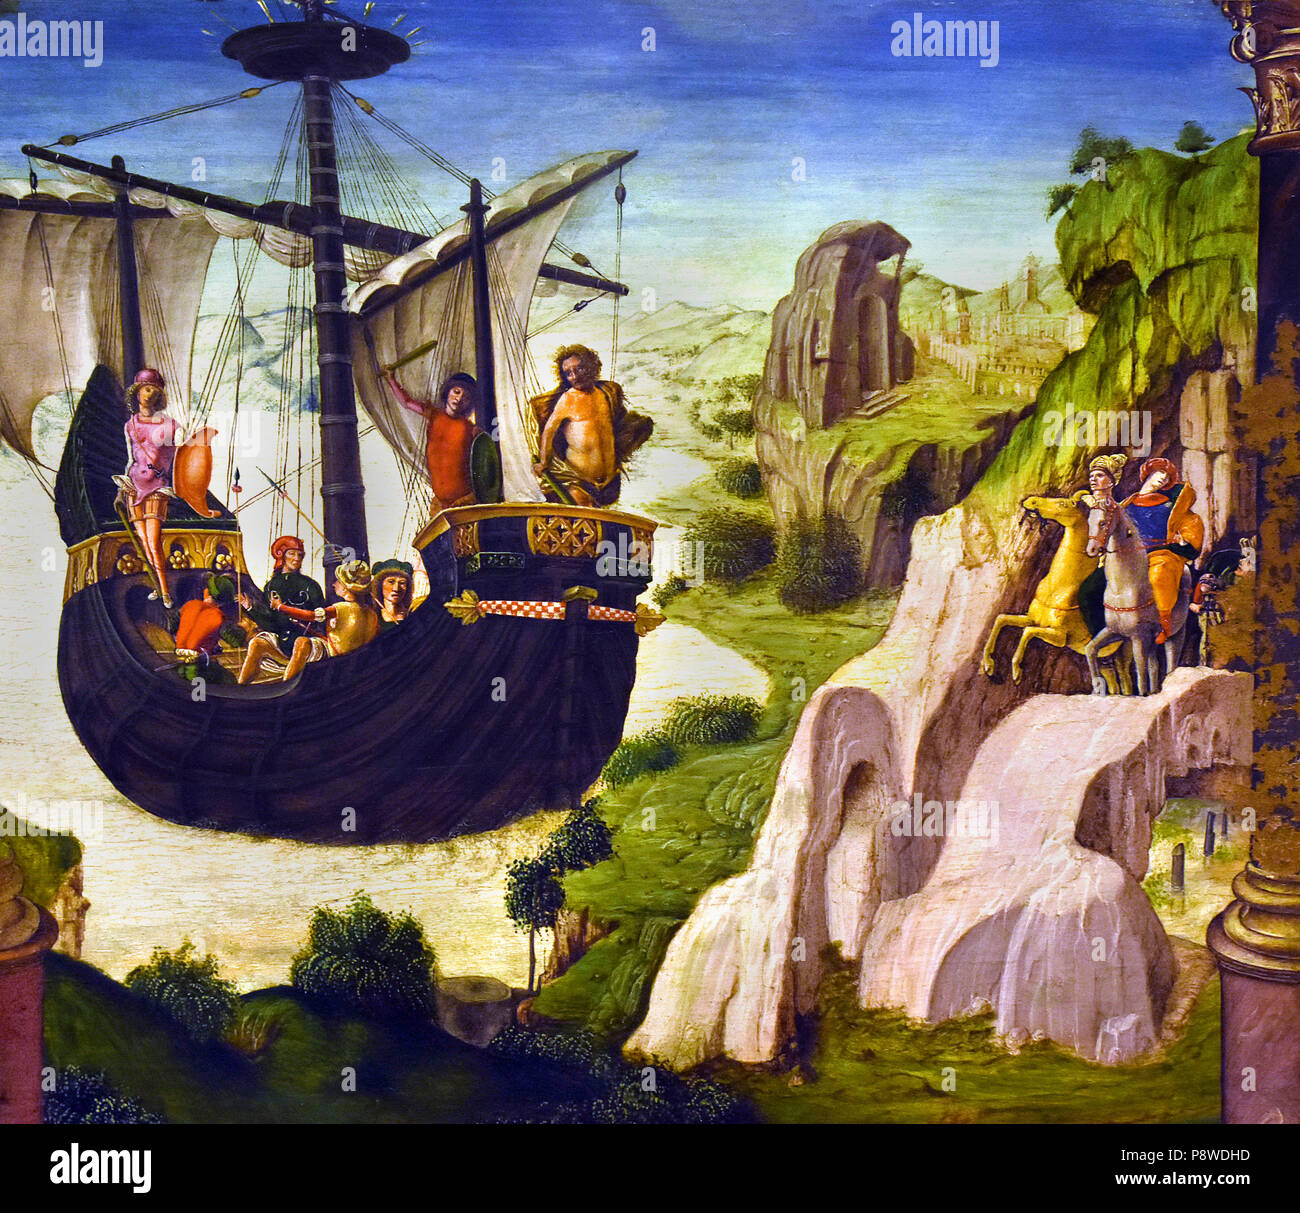 The expedition of the Argonauts by Lorenzo Costa il Vecchio - Lorenzo Costa the Elder 1460 - 1535 Italy Italian ( The Argonauts were a band of heroes in Greek mythology, who in the years before the Trojan War, 1300BC, accompanied Jason to Colchis in his quest to find the Golden Fleece. ) Stock Photo